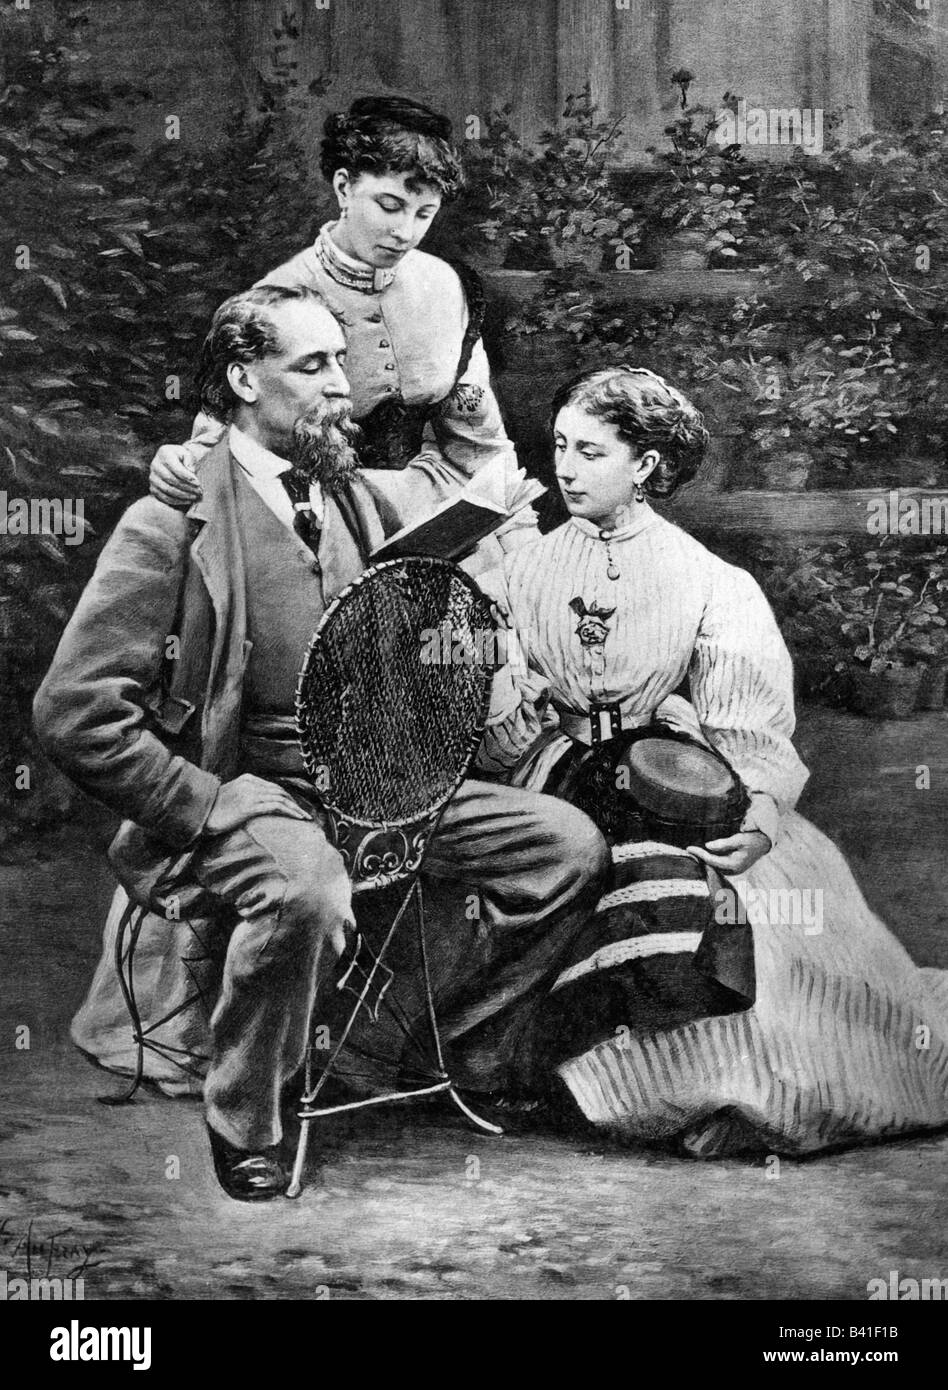 Dickens, Charles, 7.2.1812 - 9.7.1870, english author / writer, with his daughter Kate and Marie in the garden, - Stock Image